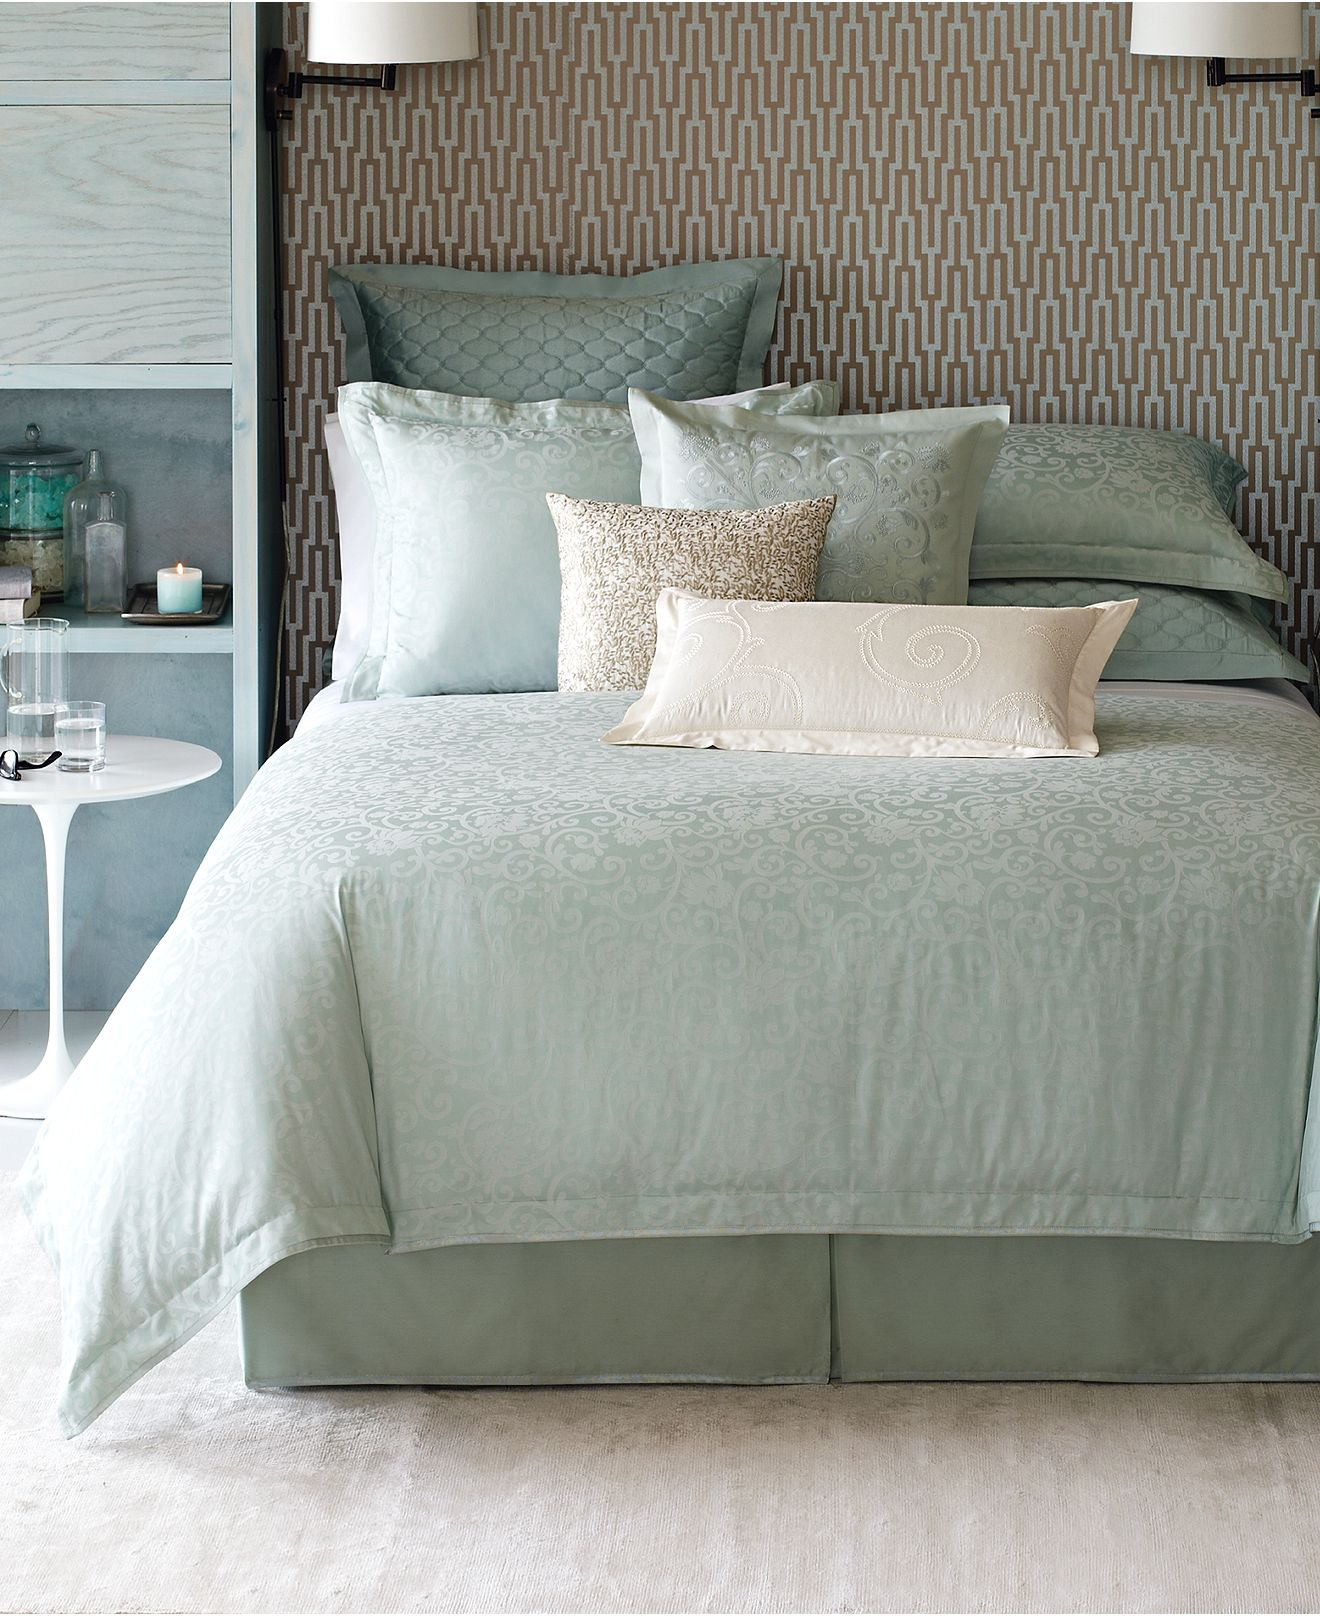 Buy Home Products from Martha Stewart Collection at Macy's! Shop a wide selection of Martha Stewart bedding, bath, furniture and Martha Stewart home decor.